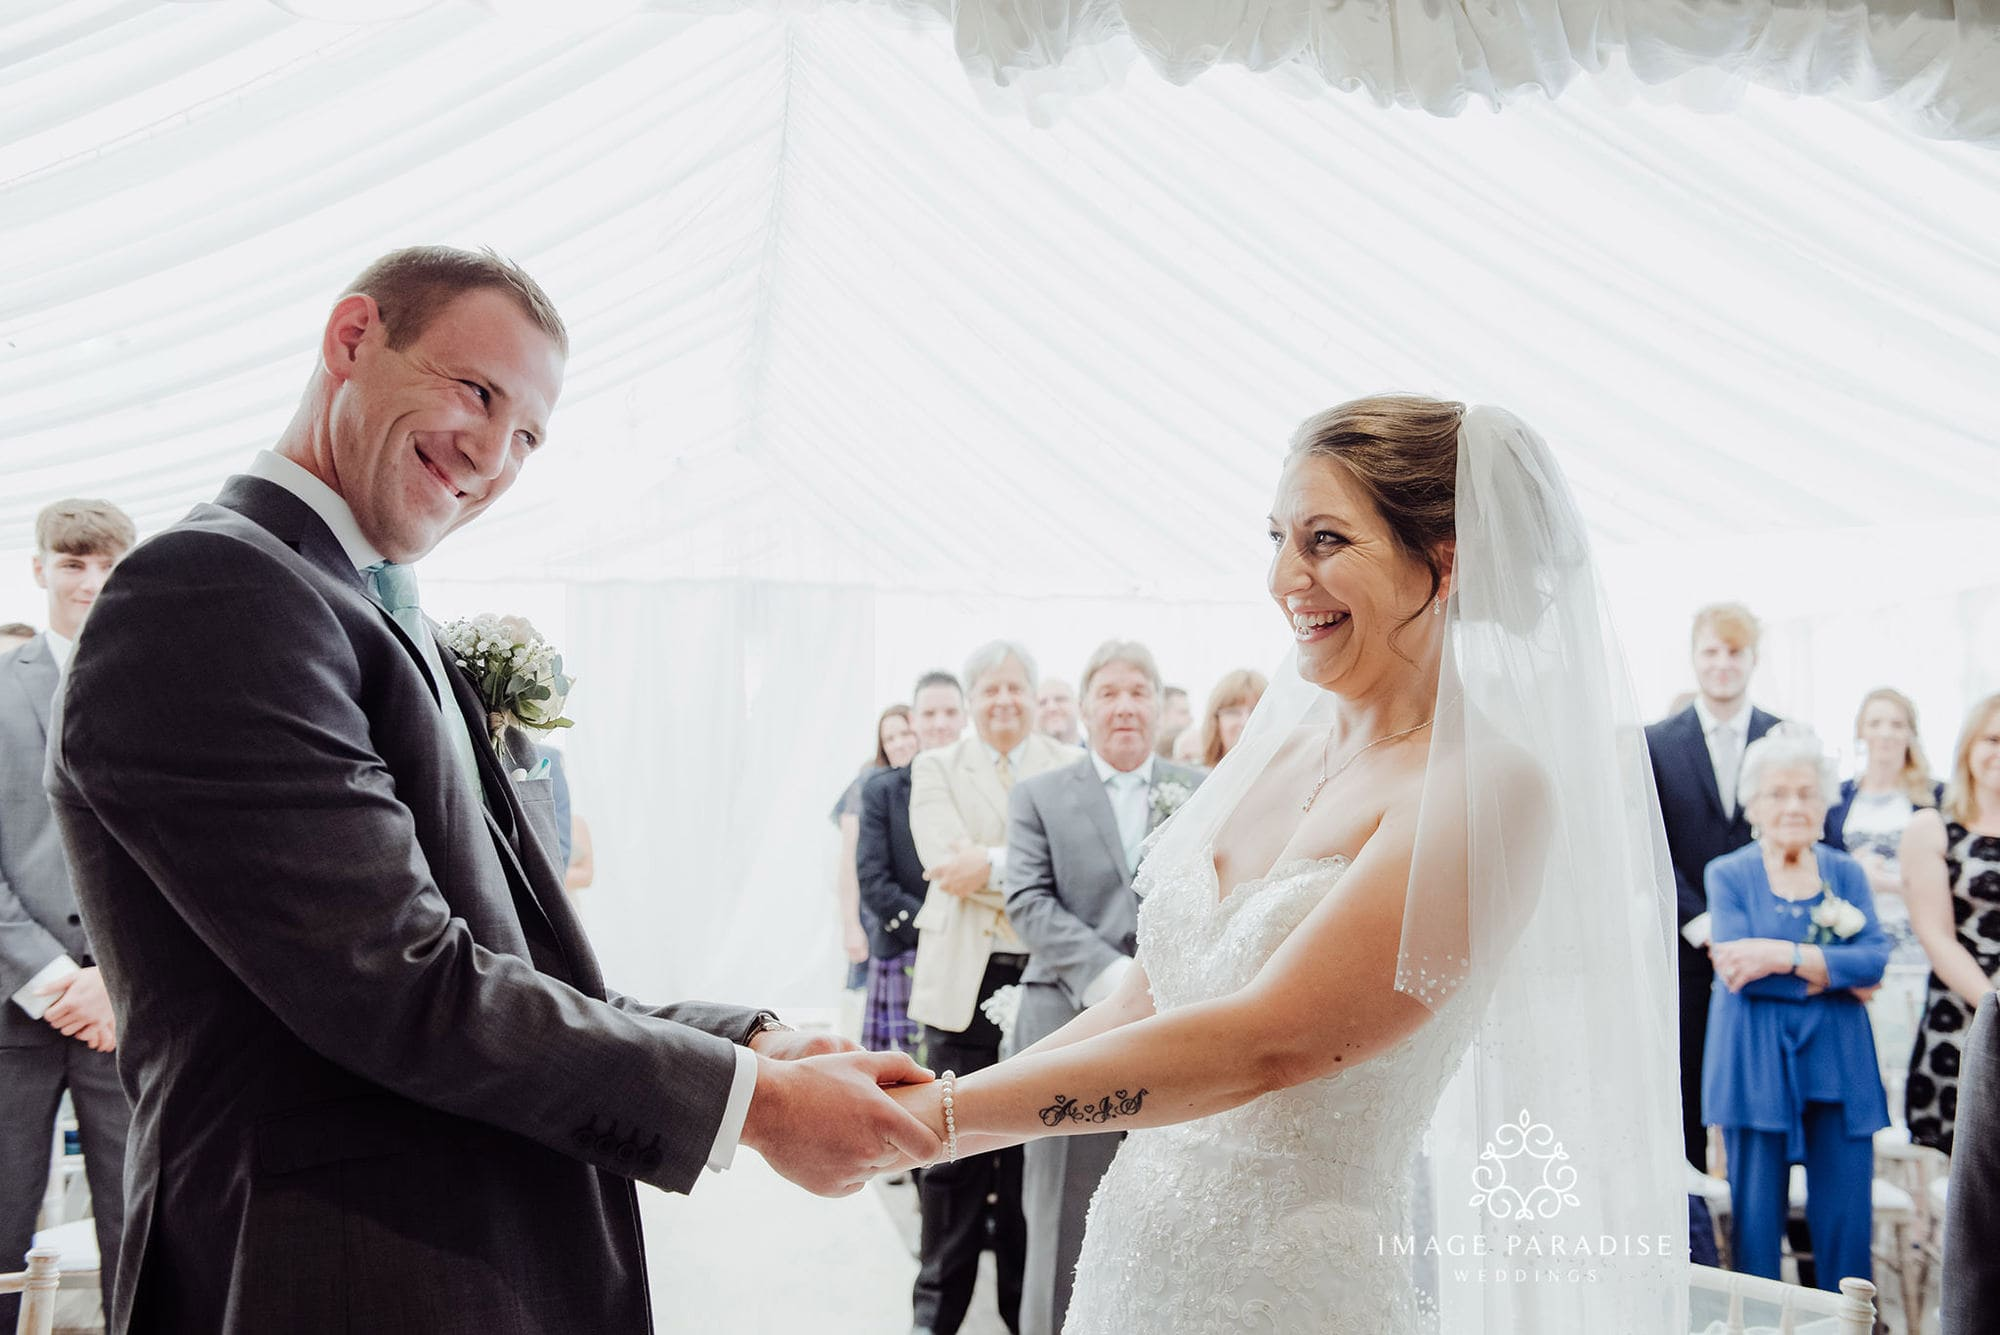 wedding ceremony at the Cotswolds hotel and spa where bride and groom smile and hold hands